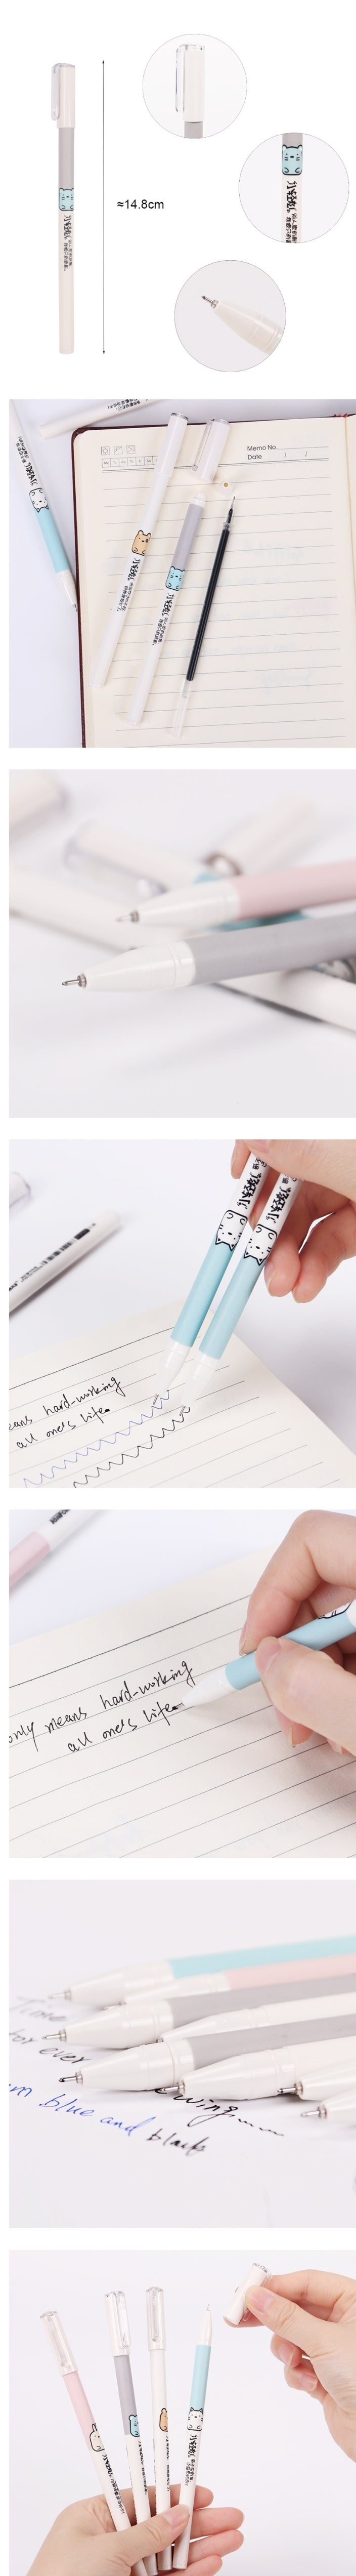 Cute Animal Pens: Set of 4 – Otrio Stationery & Gifts